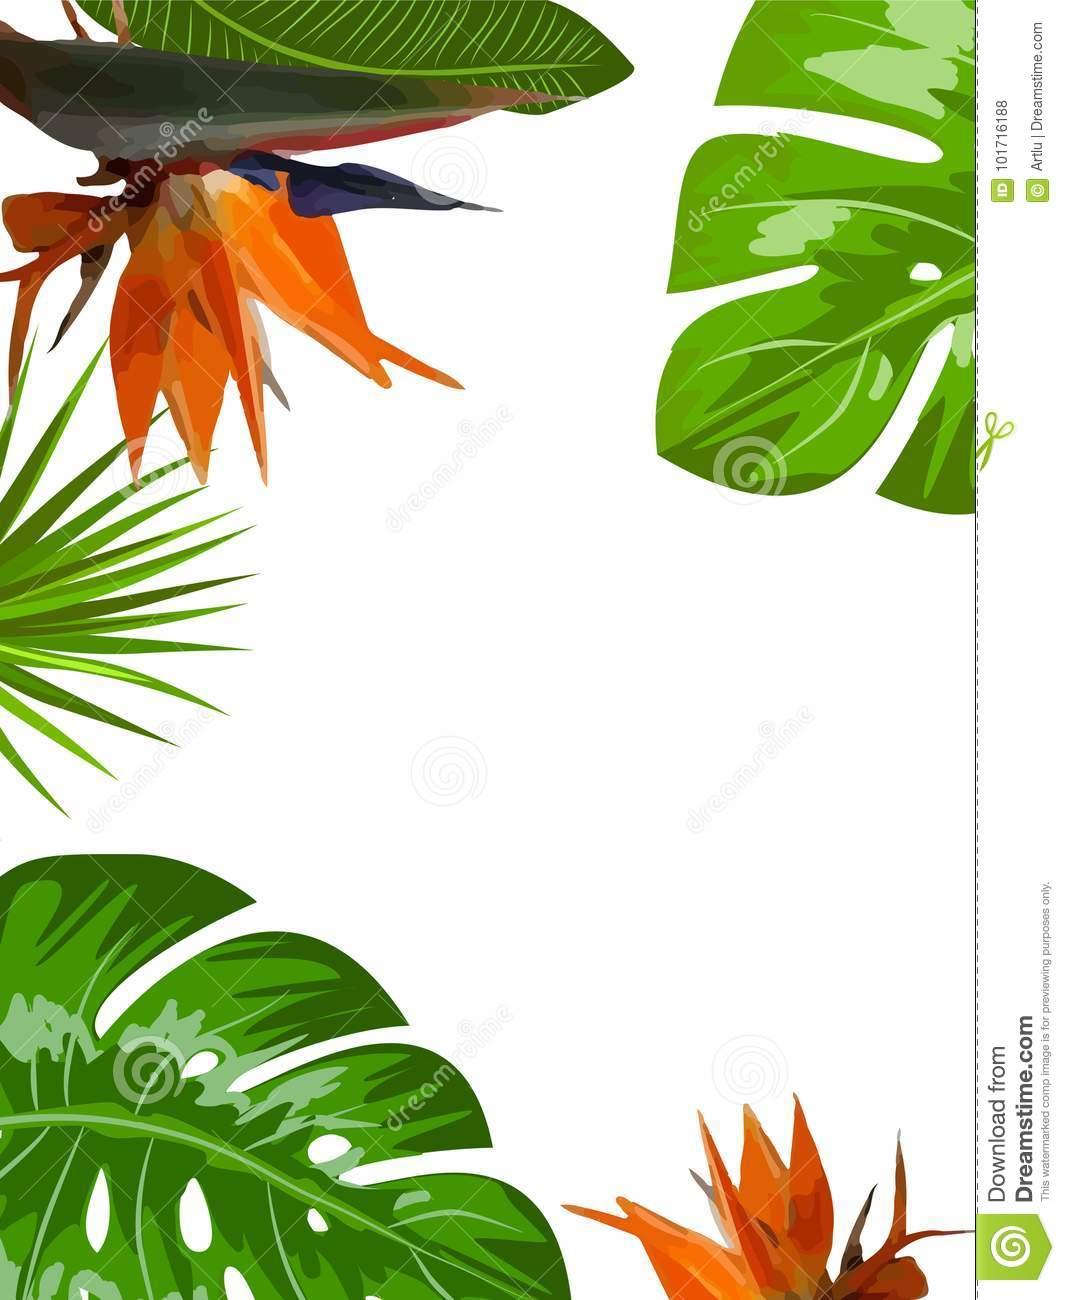 vector tropical jungle background with palm trees and leaves stock rh dreamstime com vector jungle animals vector jungle animals